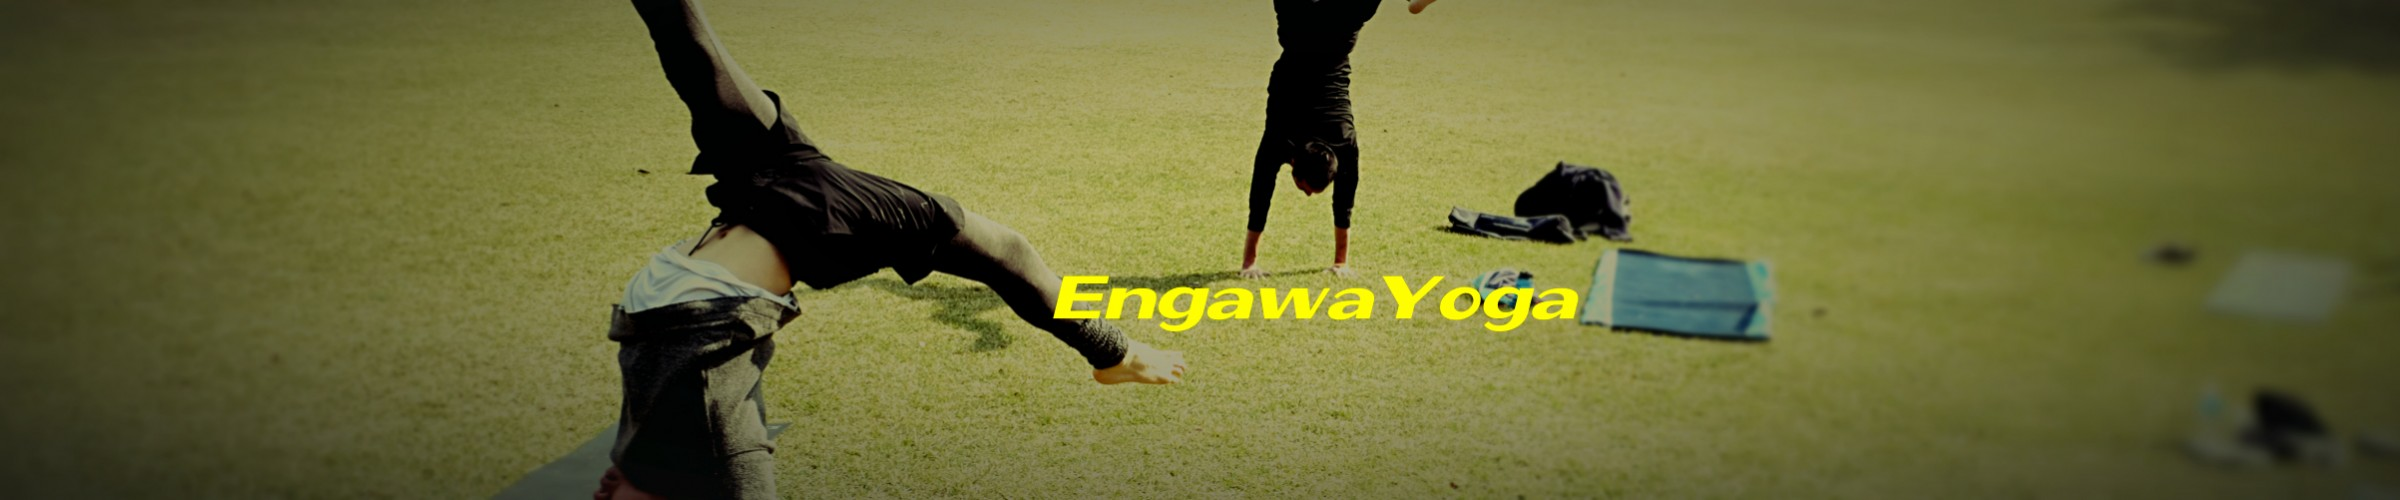 cropped-EngawaYoga_top1.jpg